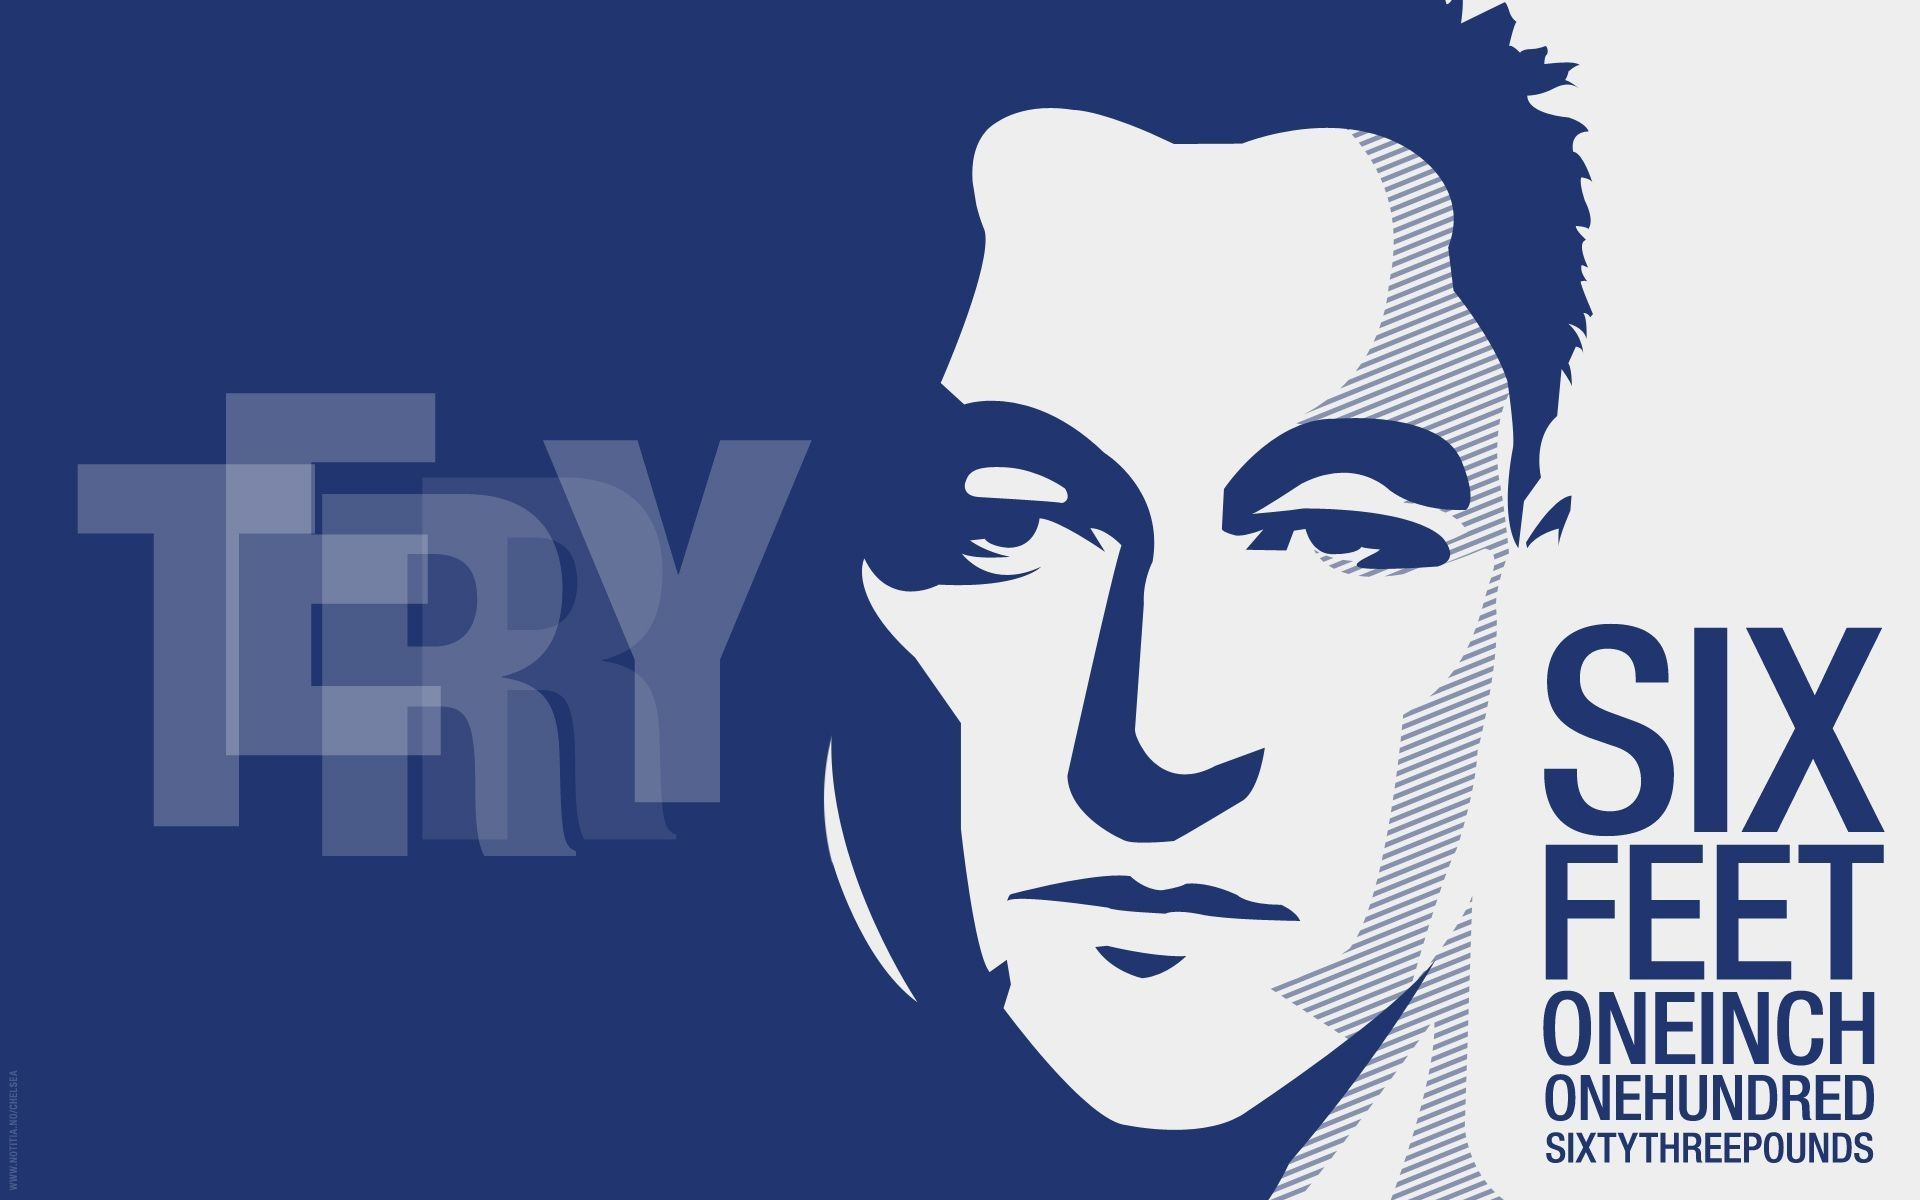 1920x1200 John-Terry-2015-Chelsea-FC-Wallpaper.jpg